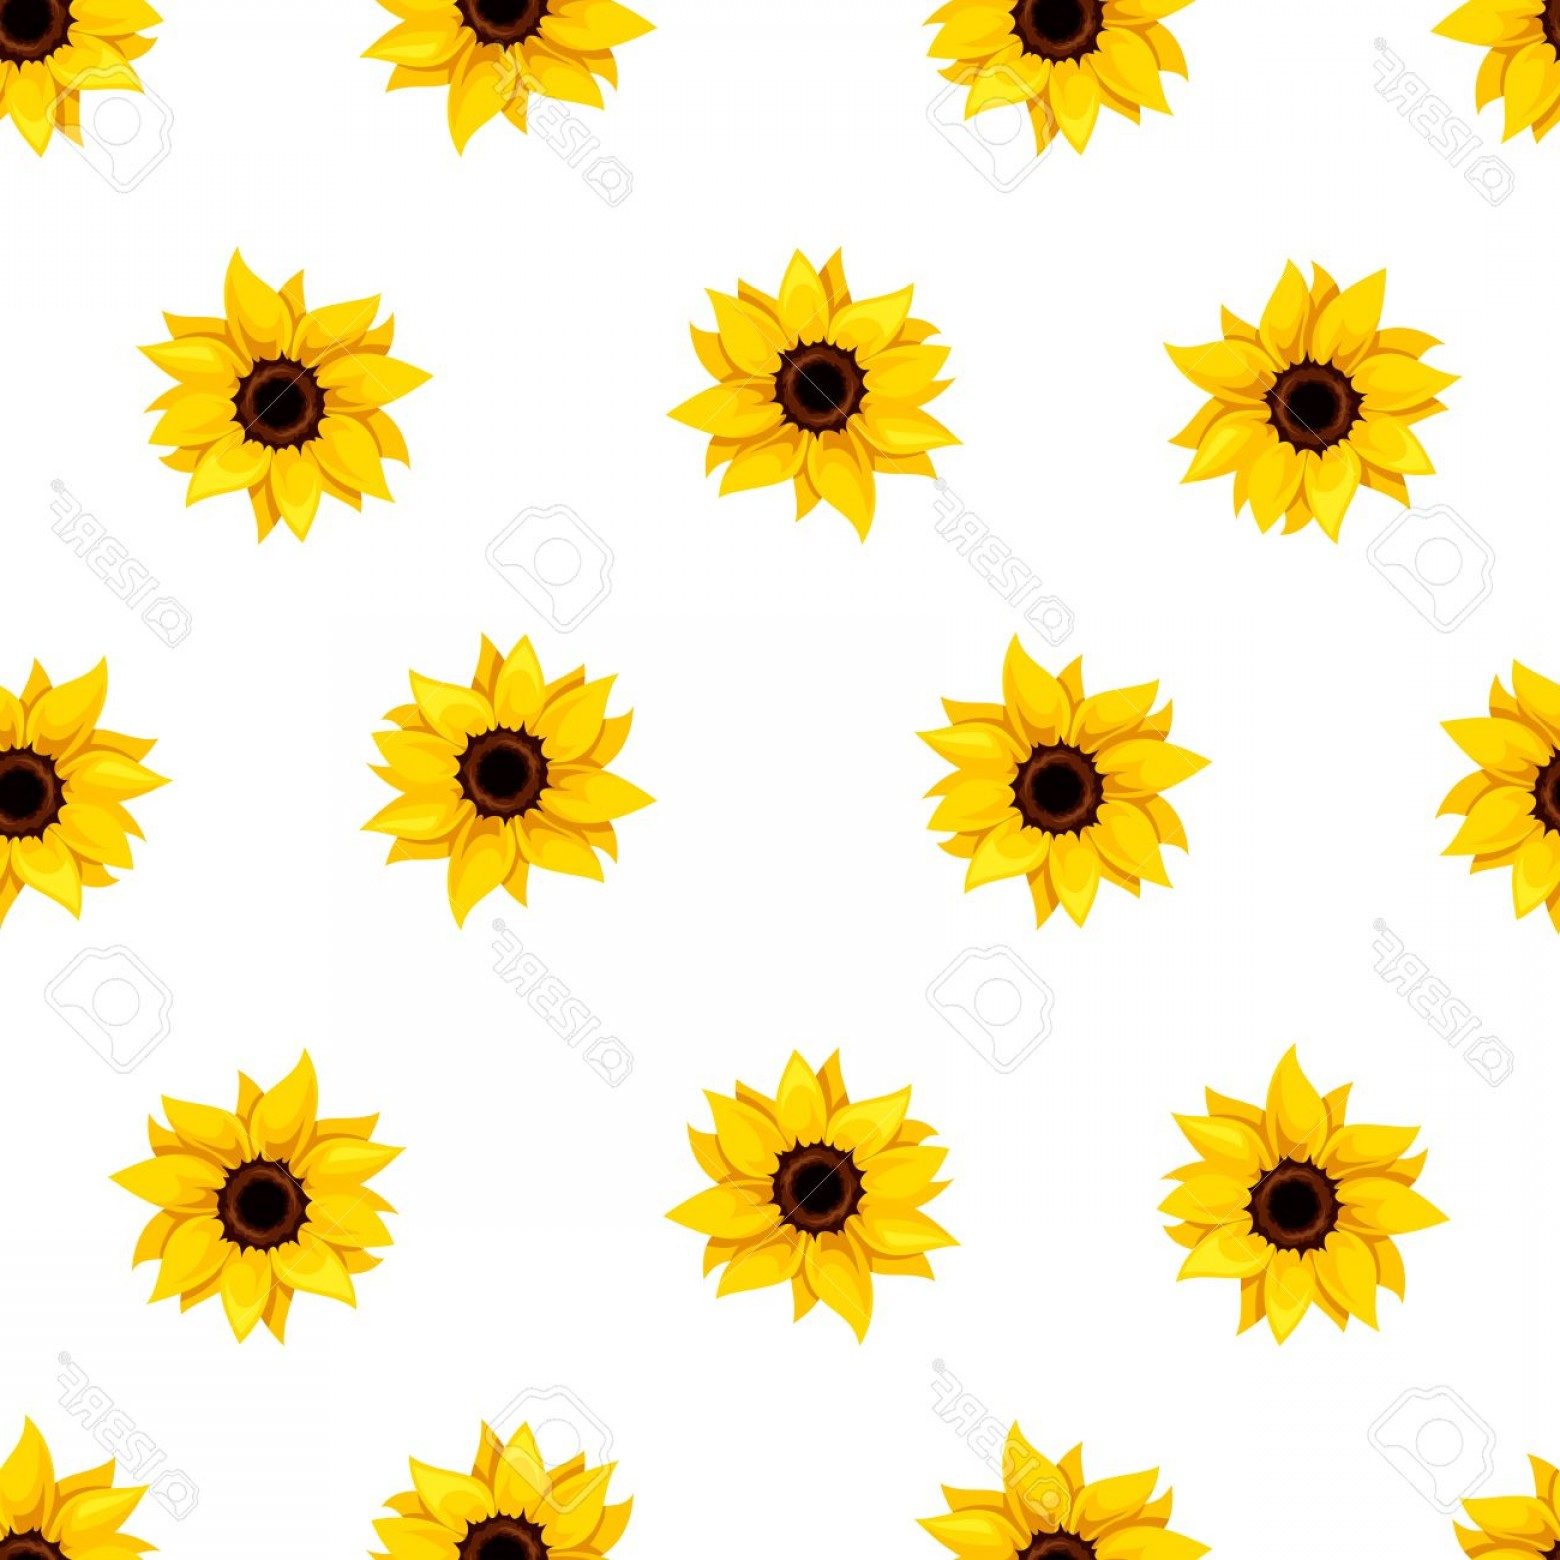 Sunflower Vector Pattern: Photostock Vector Vector Seamless Pattern With Yellow Sunflowers On A White Background